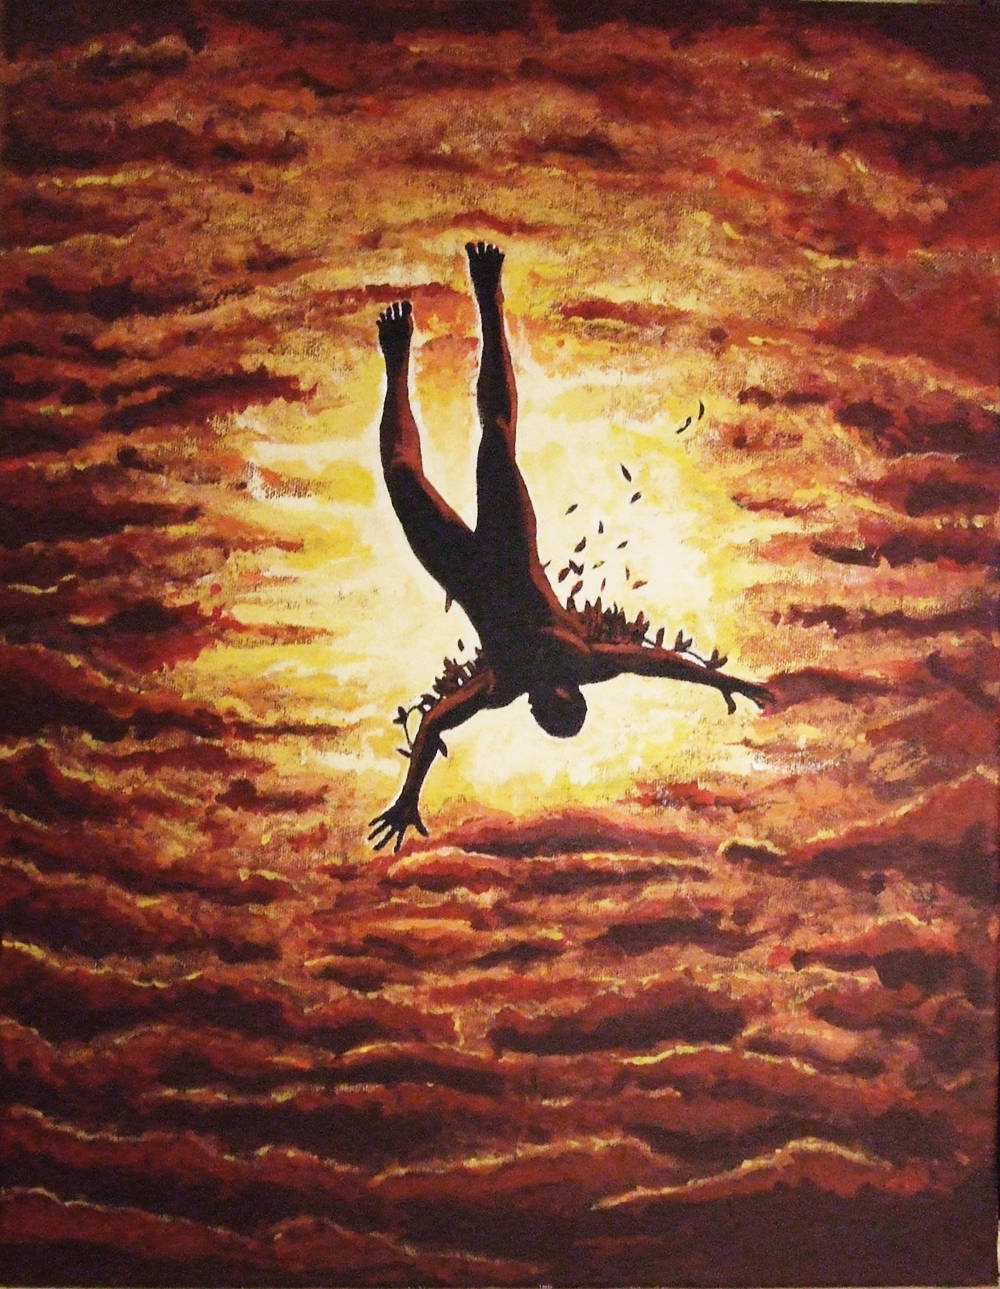 the_fall_of_icarus_by_mitcheliseuphoric.jpg